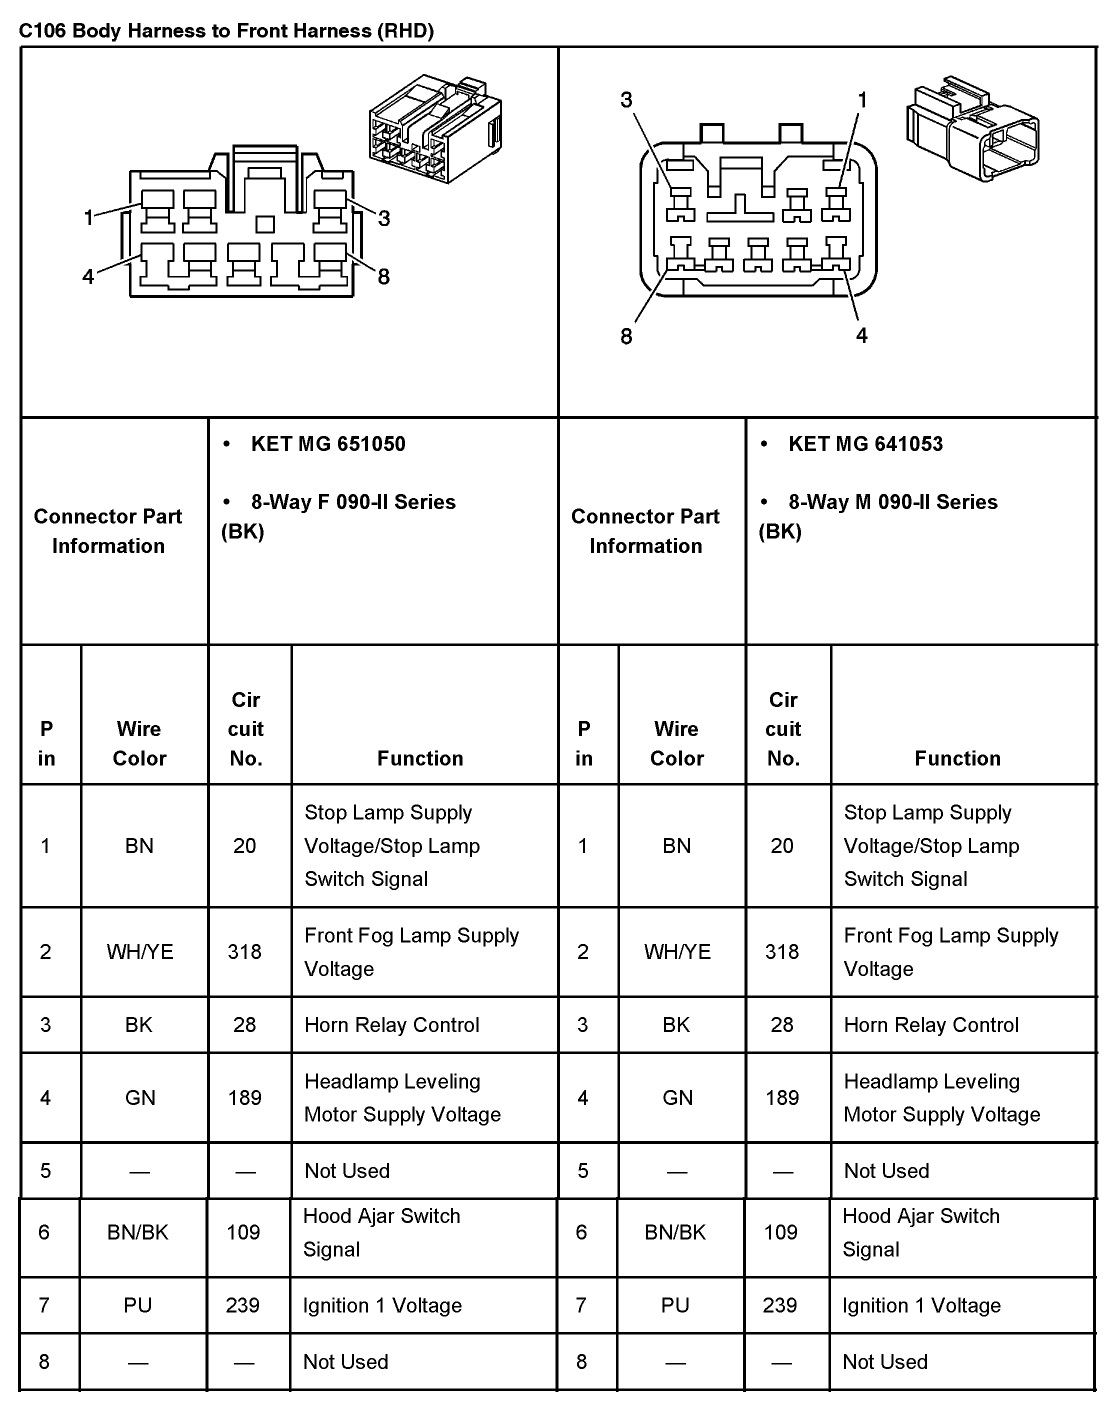 Chevy Optra 5 Wiring Diagram Worksheet And 1975 Chevrolet 2005 Aveo Master Connector List Diagrams Rh Aveoforum Com Alternator Ignition